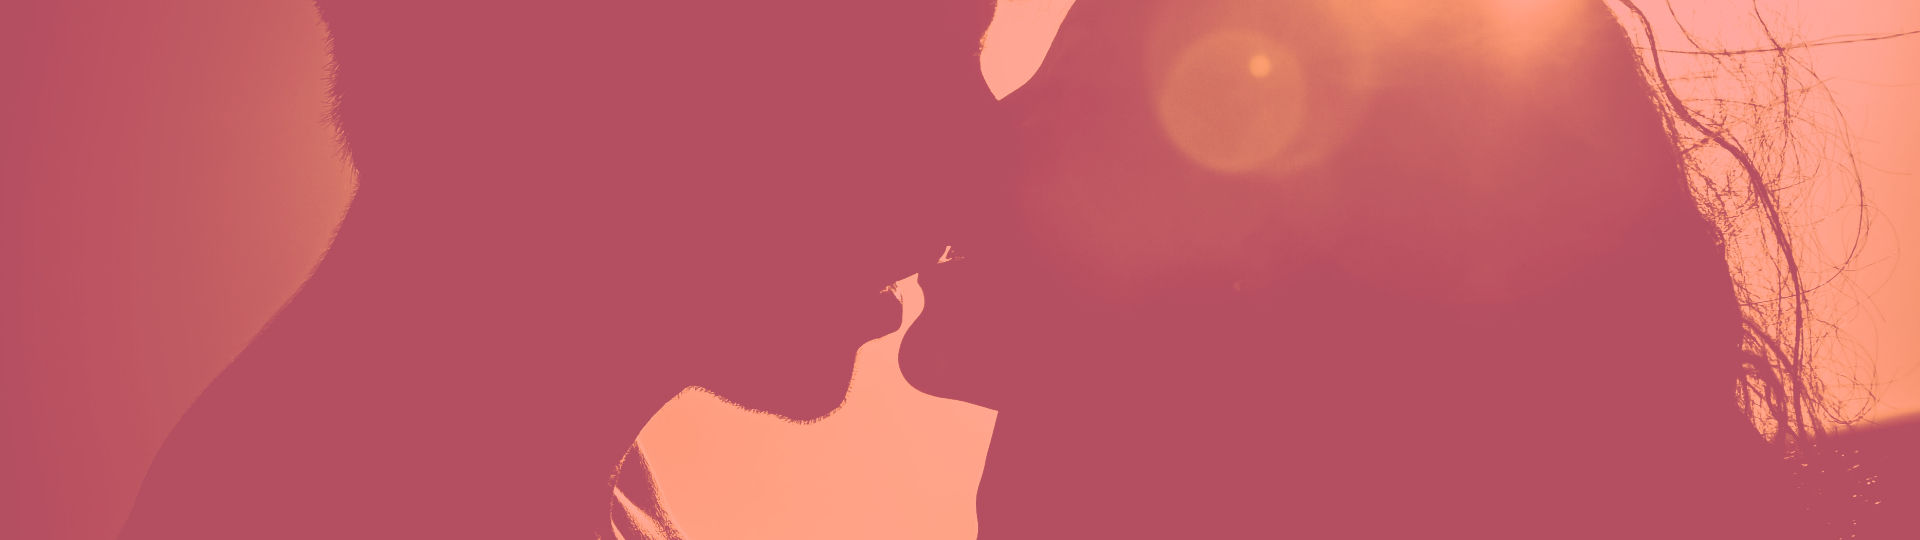 singles dating vedanta non-duality